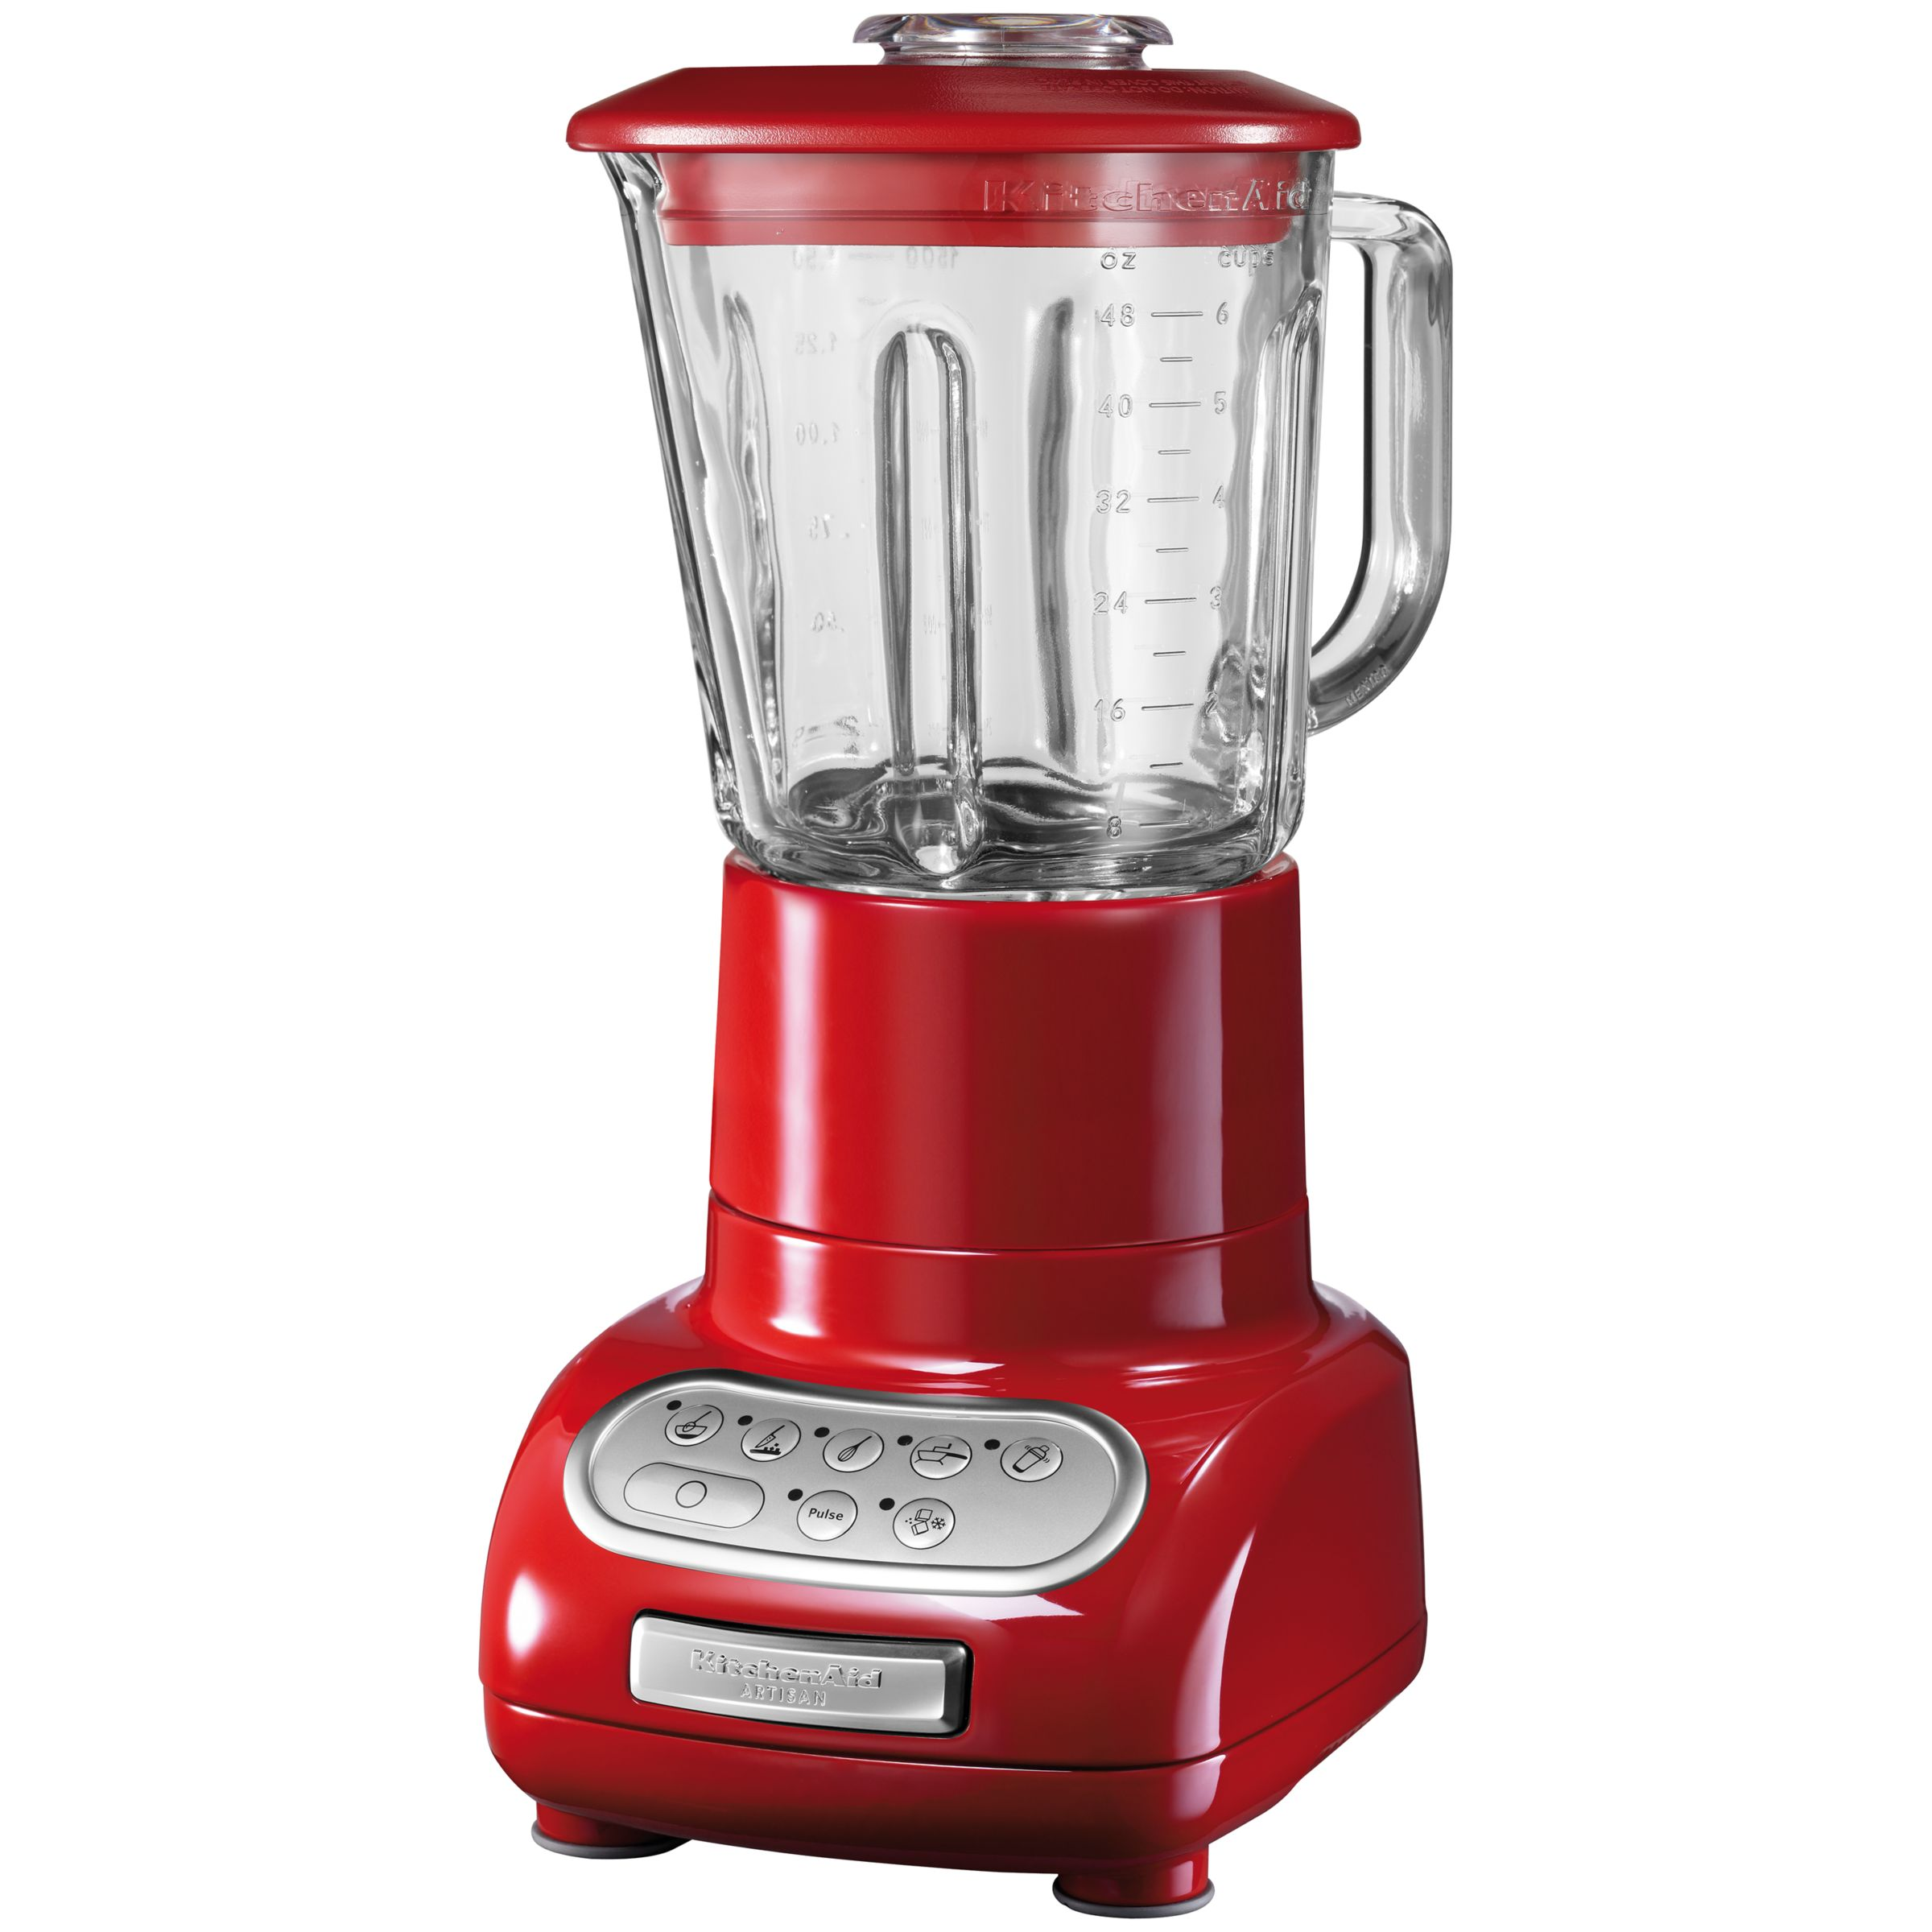 Blenders and smoothie makers